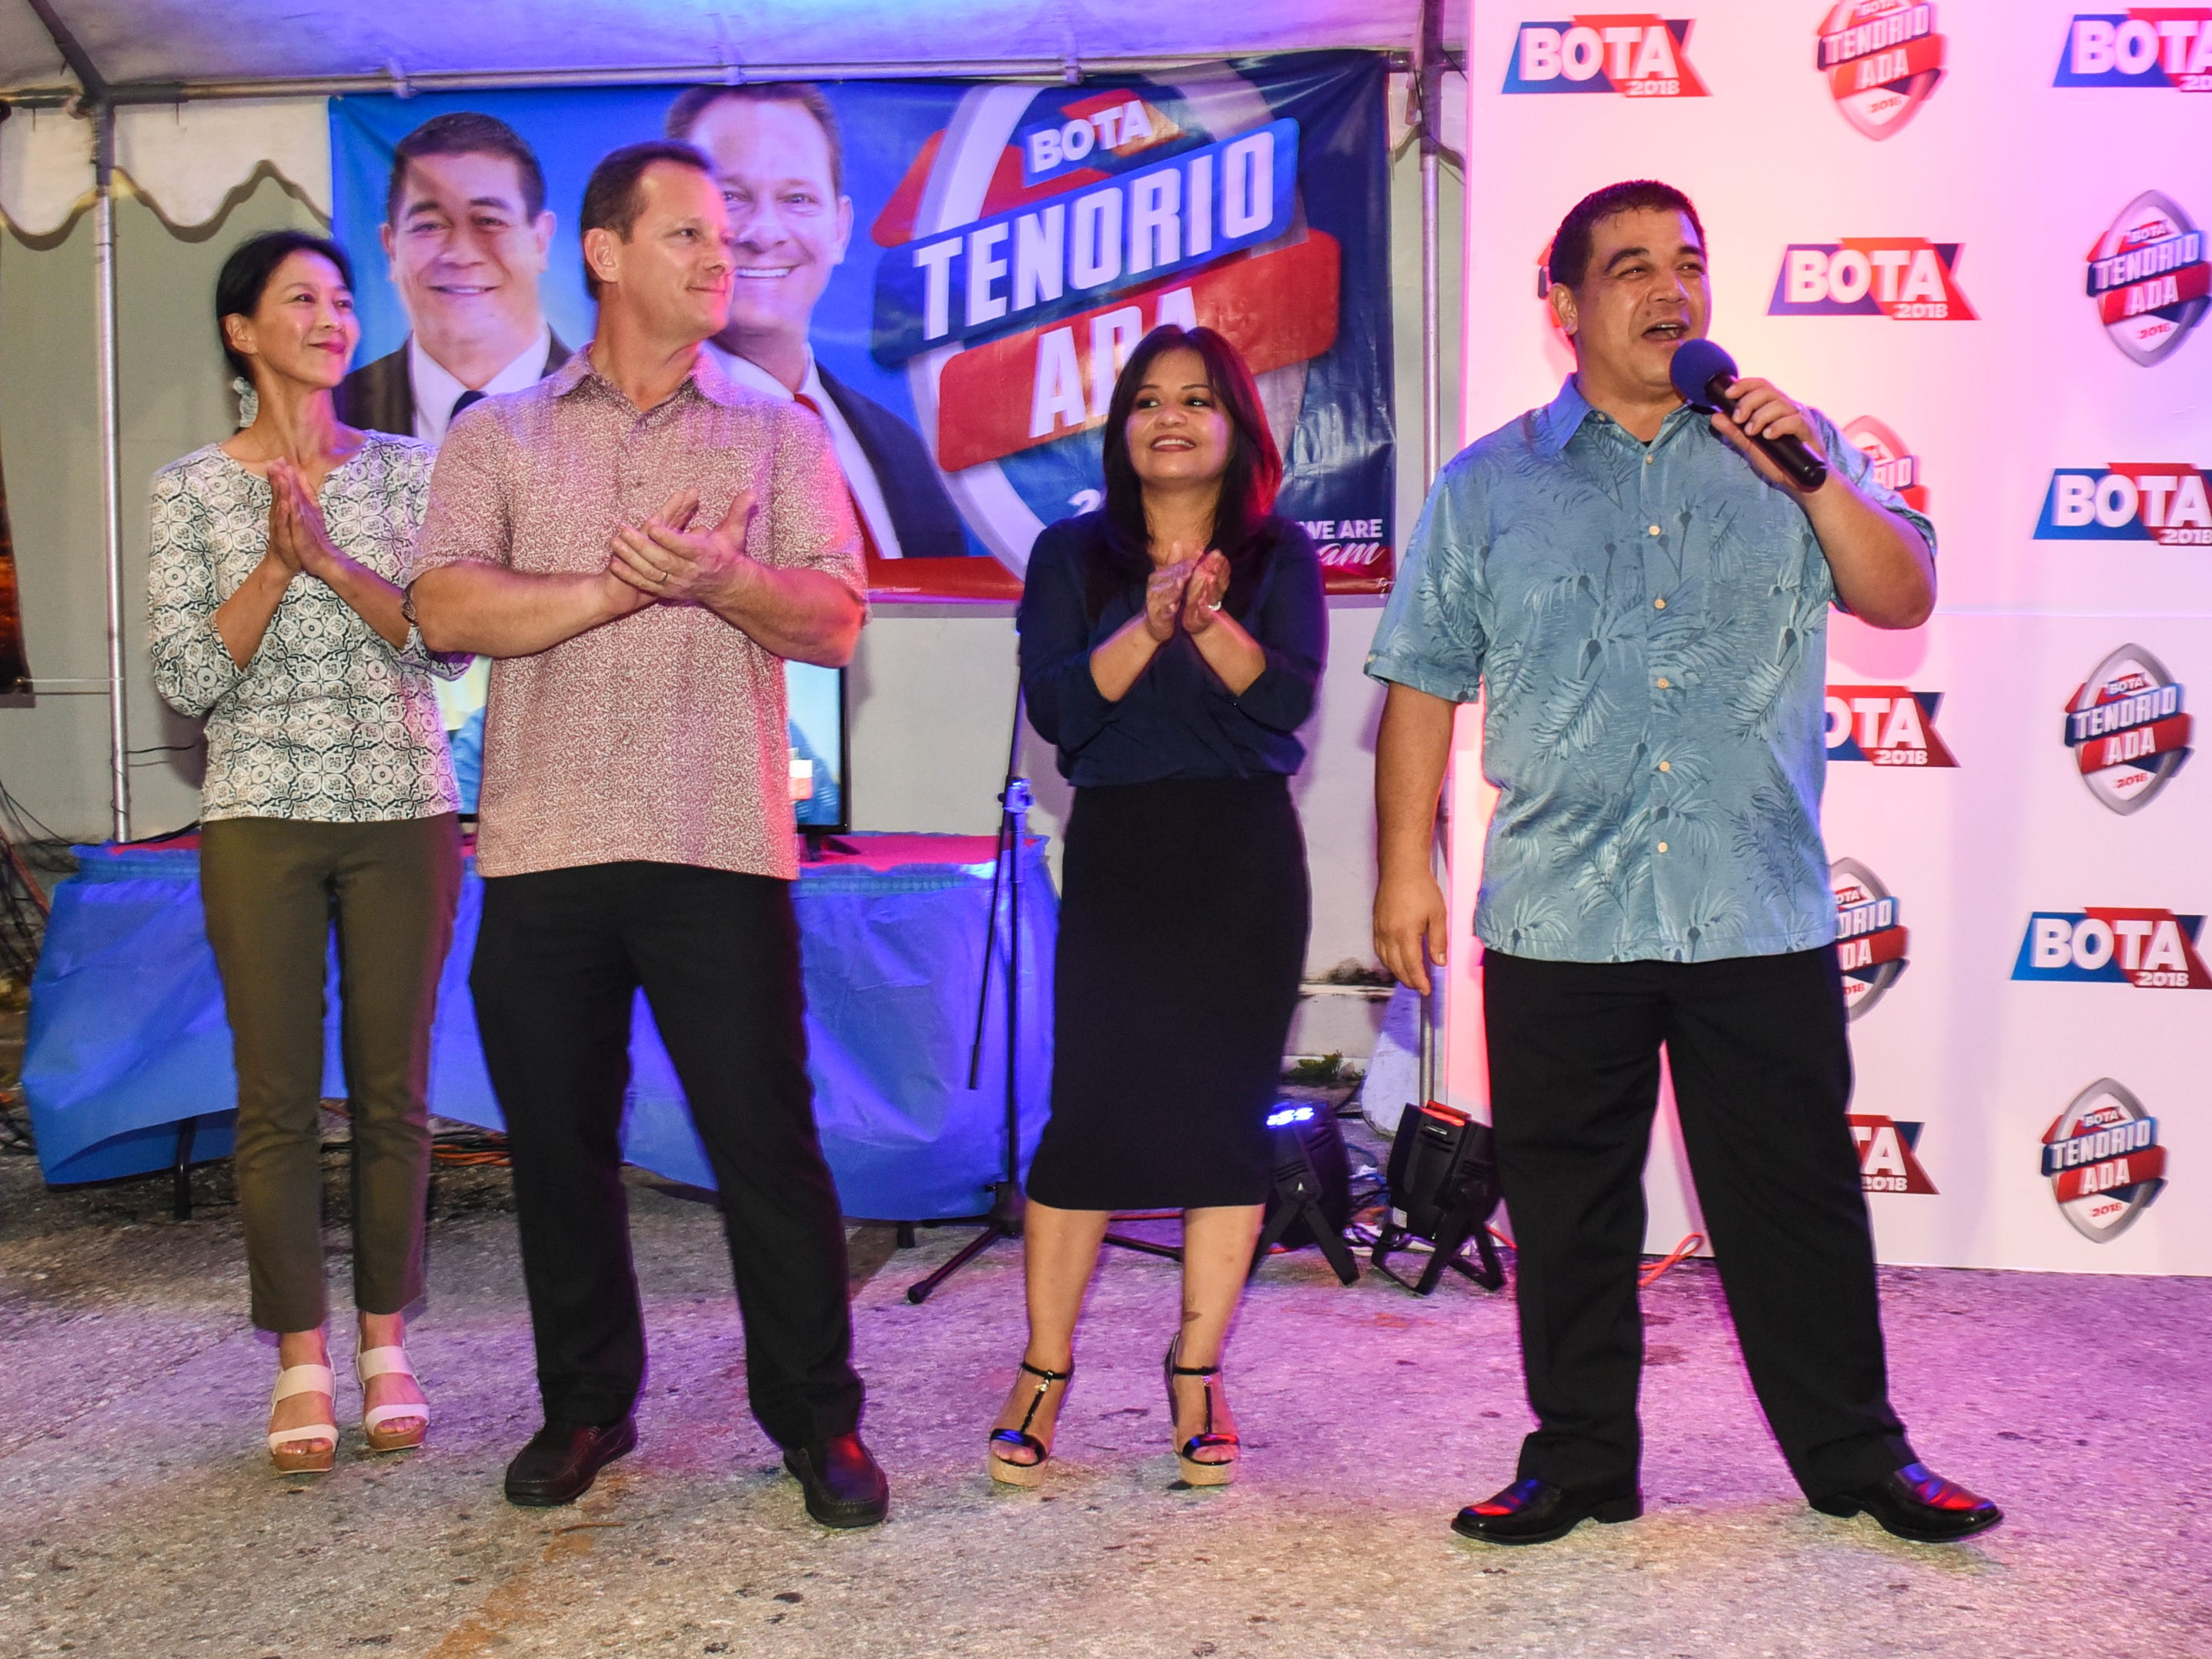 Republican candidate for lieutenant governor, Sen. Tony Ada, right, speaks to supporters with his wife, Annette, at his side as well as gubernatorial candidate, Lt. Gov. Ray Tenorio and Madoka Tenorio, during the early morning hours of Wednesday, Nov. 7, 2018, at the team's campaign headquarters in Tamuning.